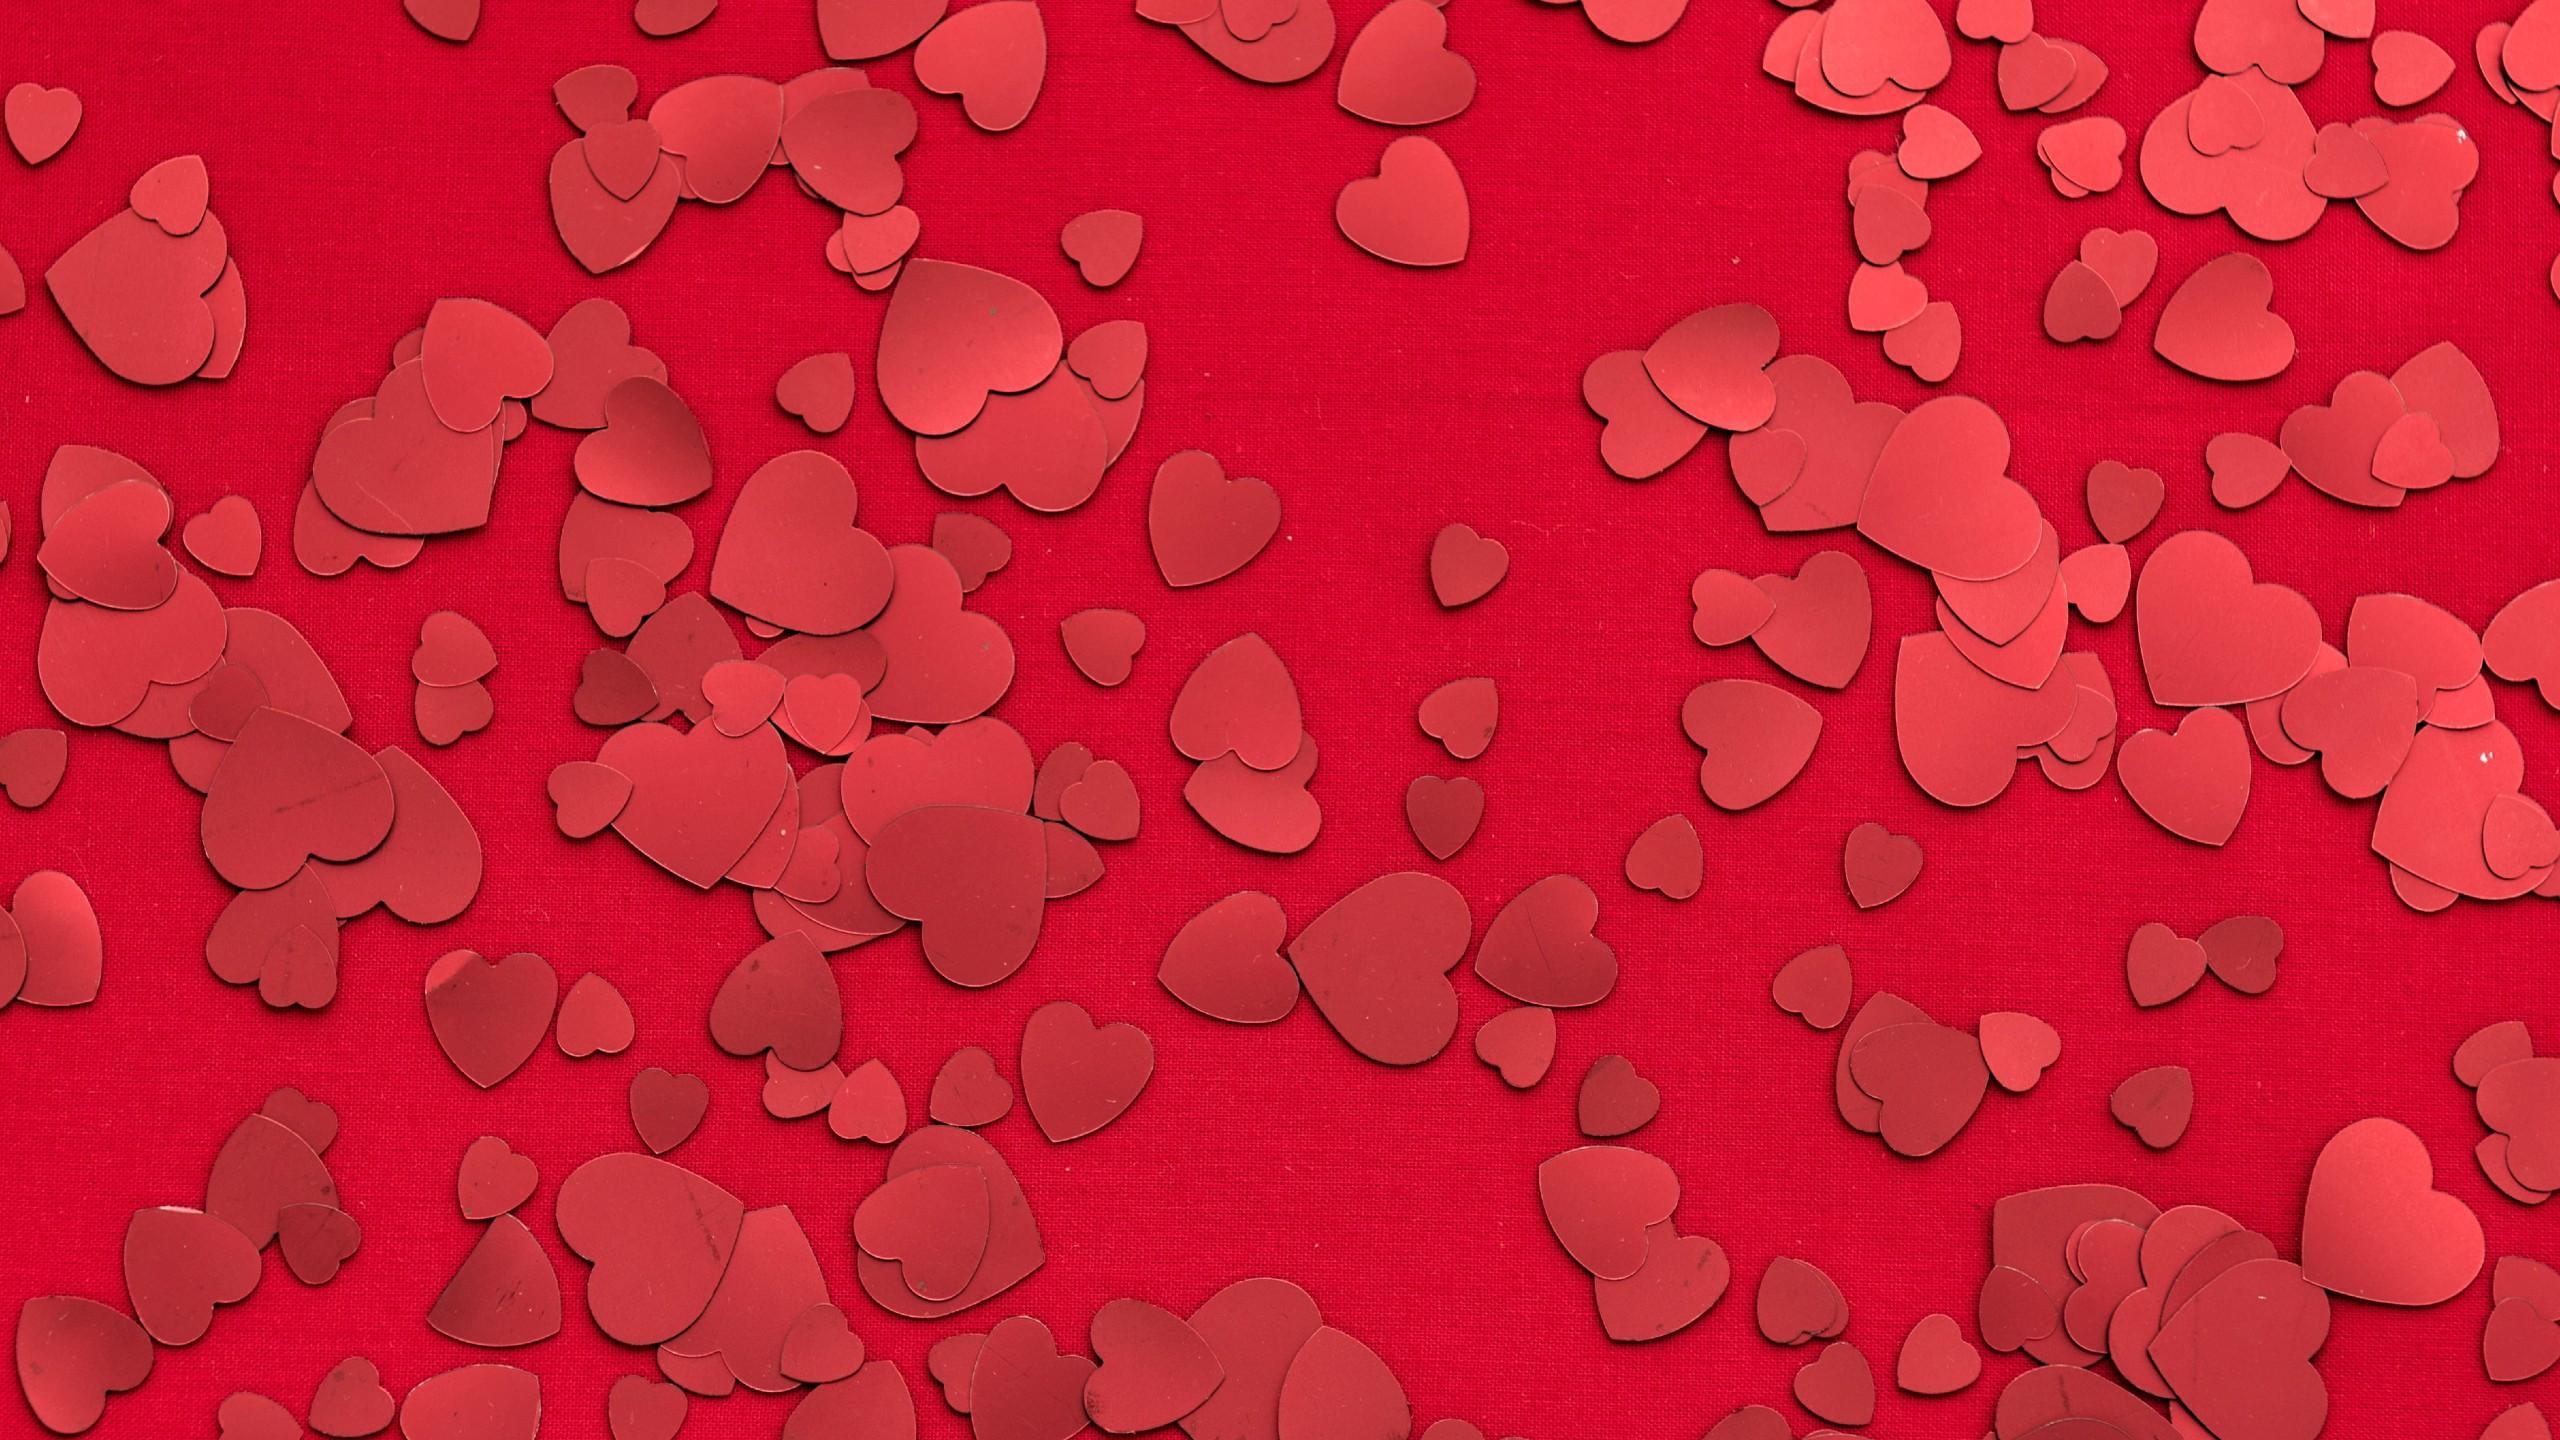 Red heart sequins scattered on a red background